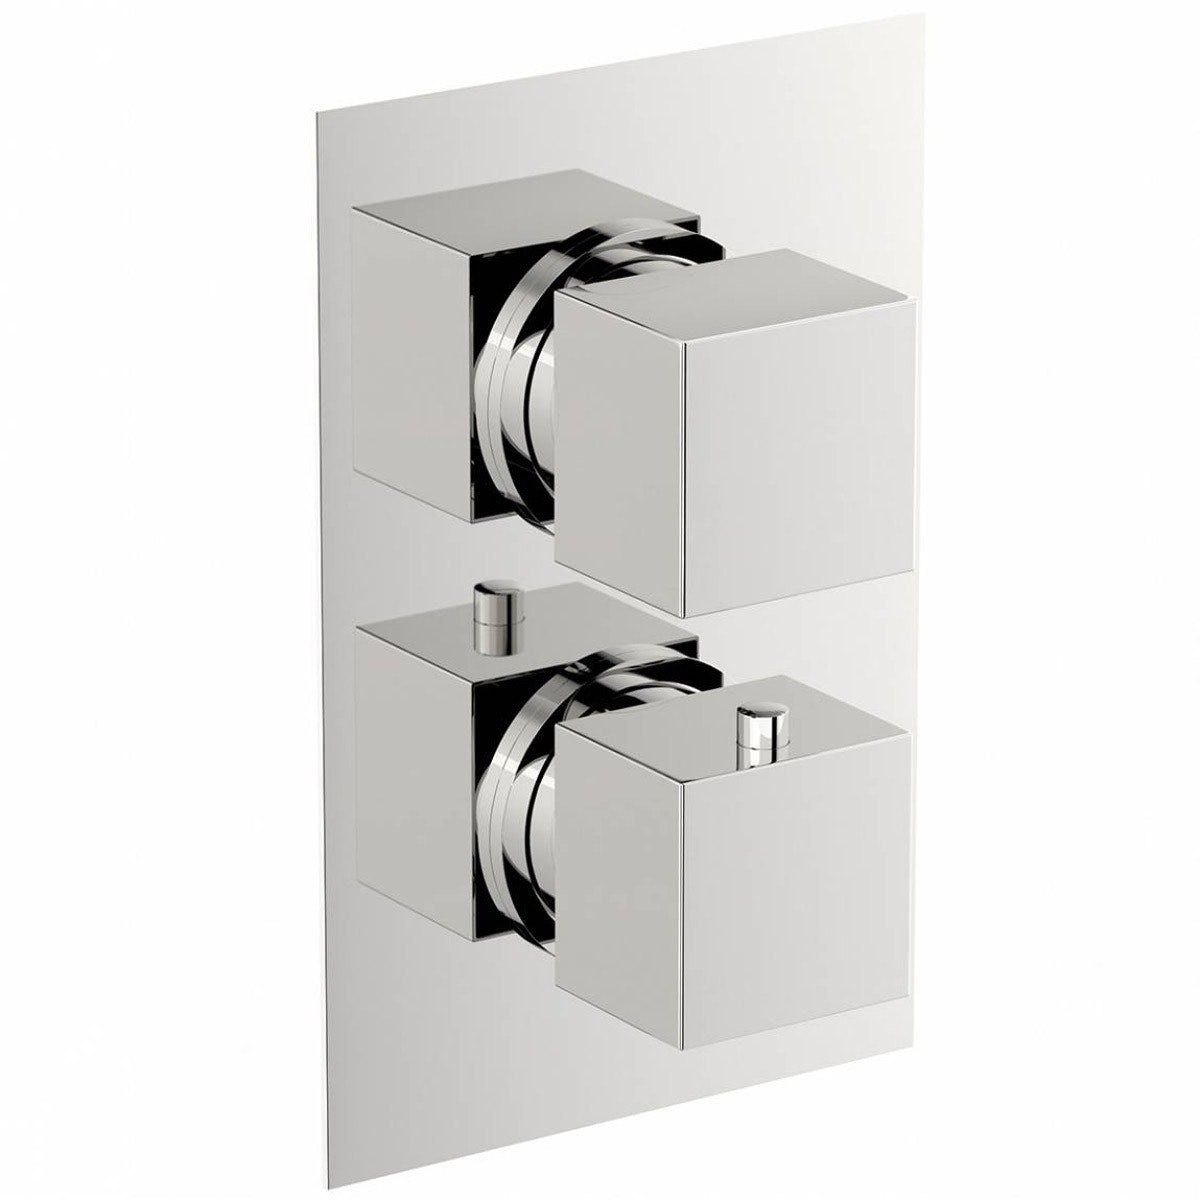 Mode Cubik square twin thermostatic shower valve